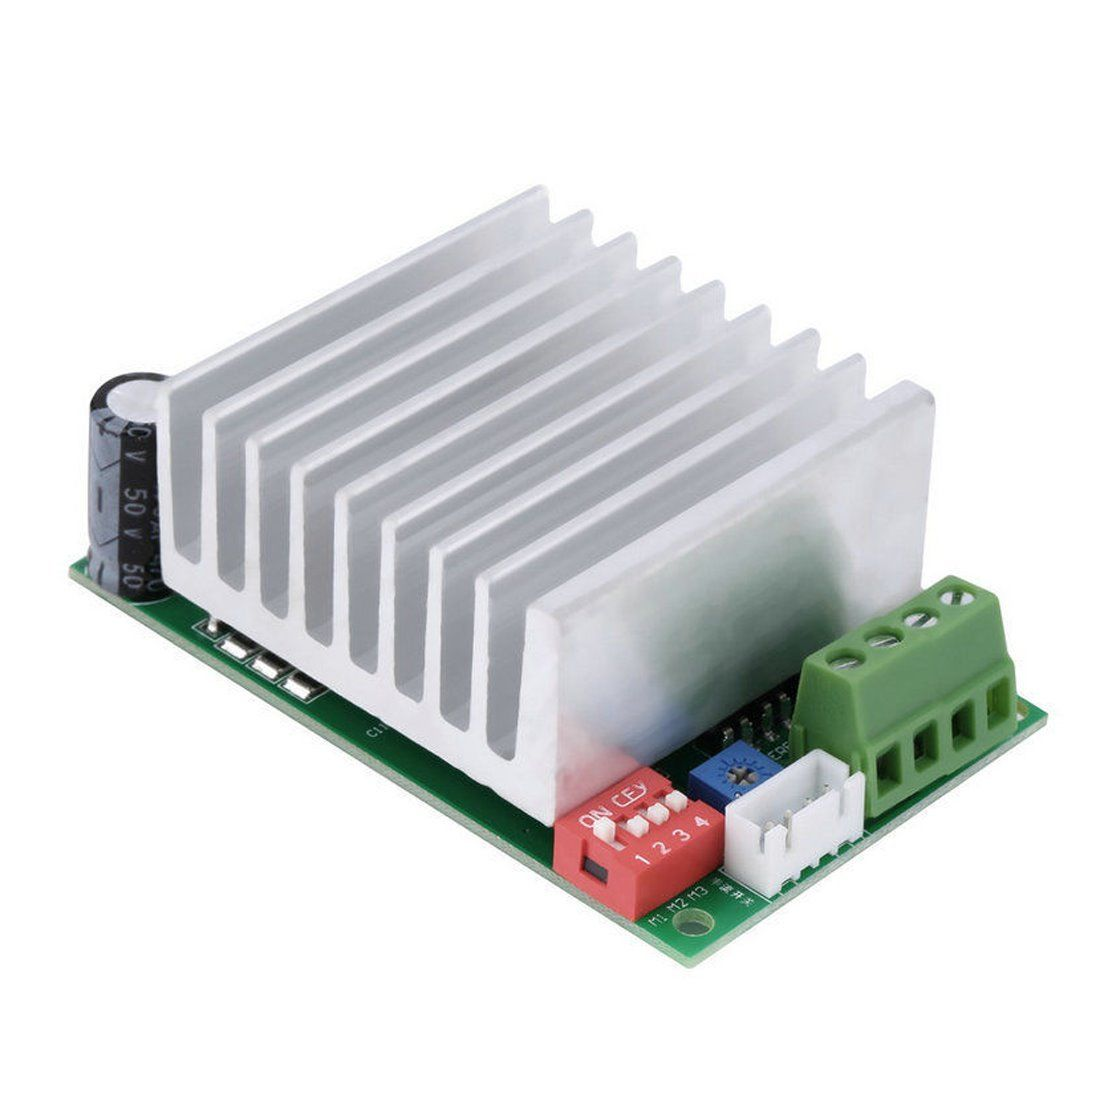 4.5A TB6600 TB6600HG Single Axis Stepper Motor Driver Controller Replace TB6560